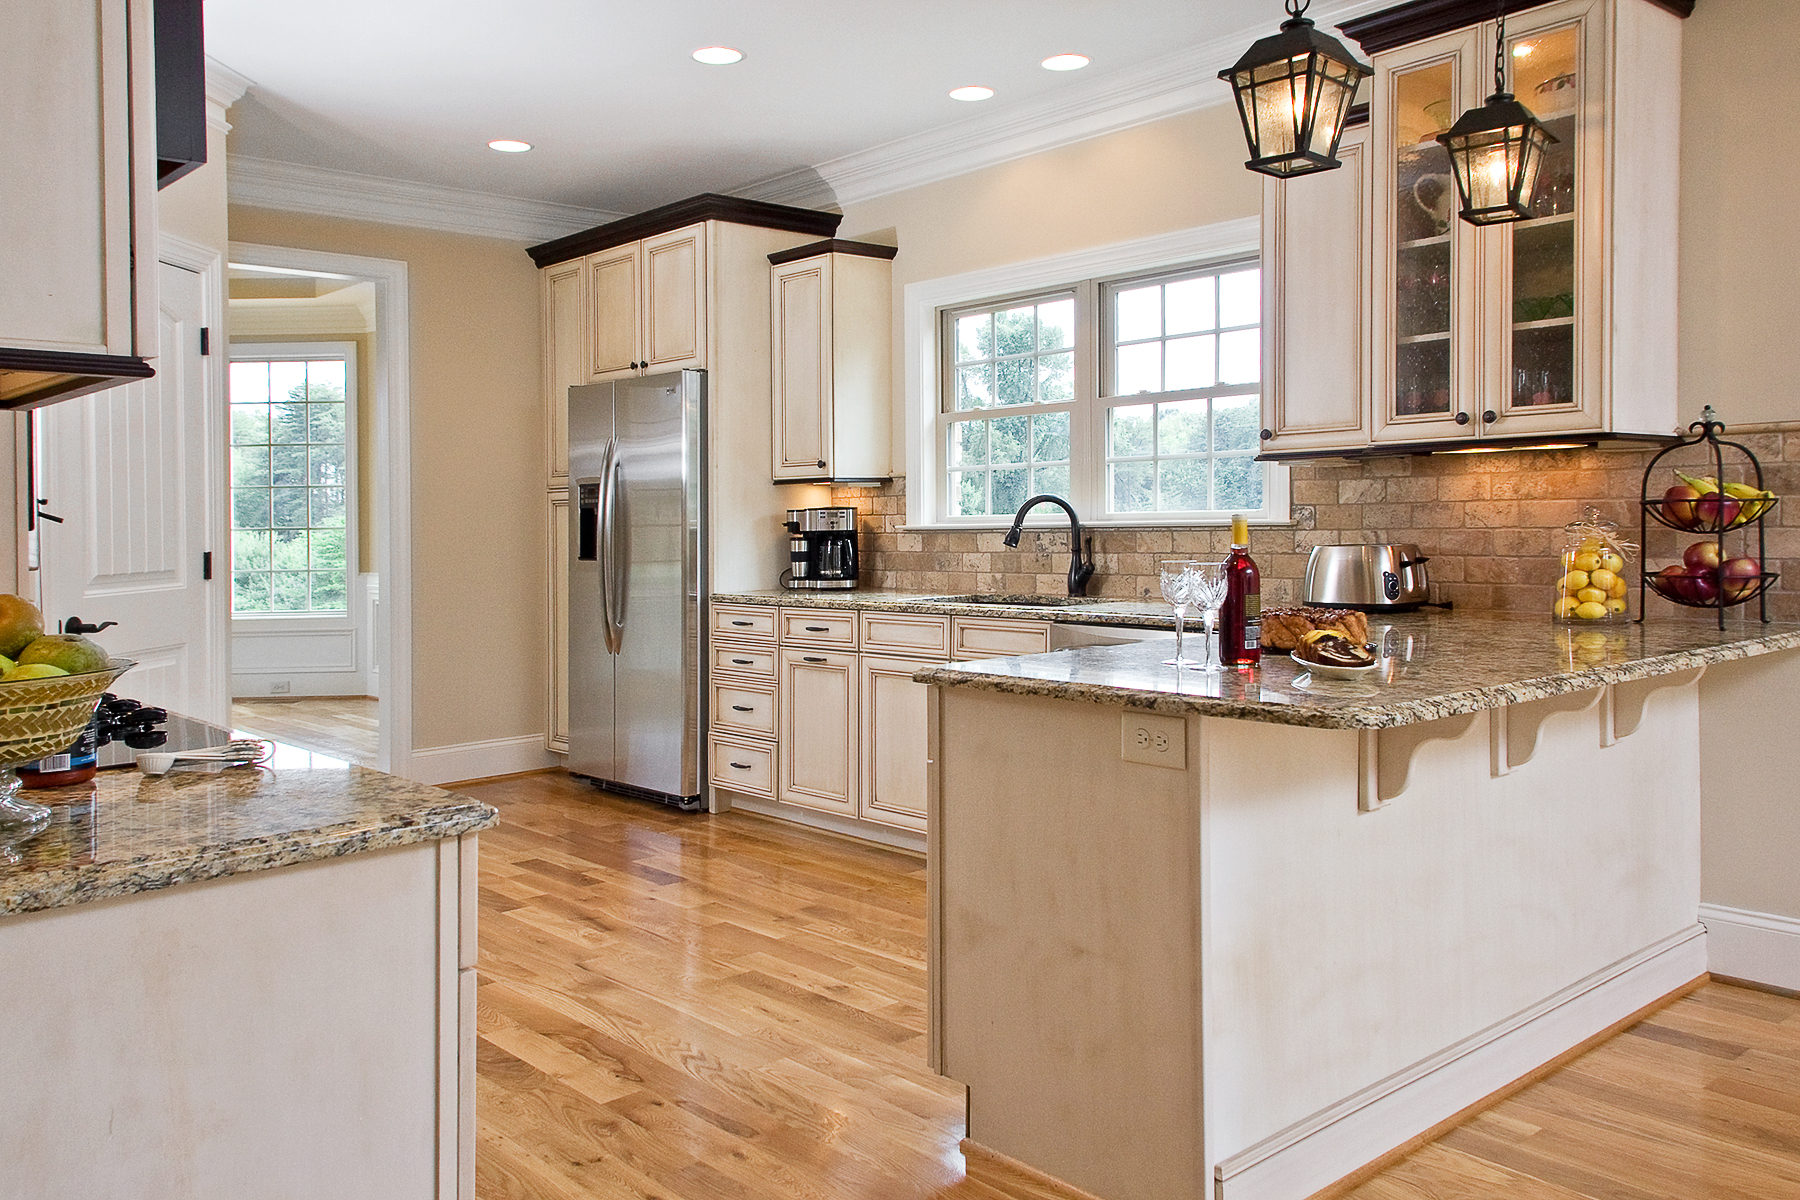 how to design a kitchen cabinets apartmentkitchenremodelma kitchen1 crystal construction boston ma kitchen remodeling